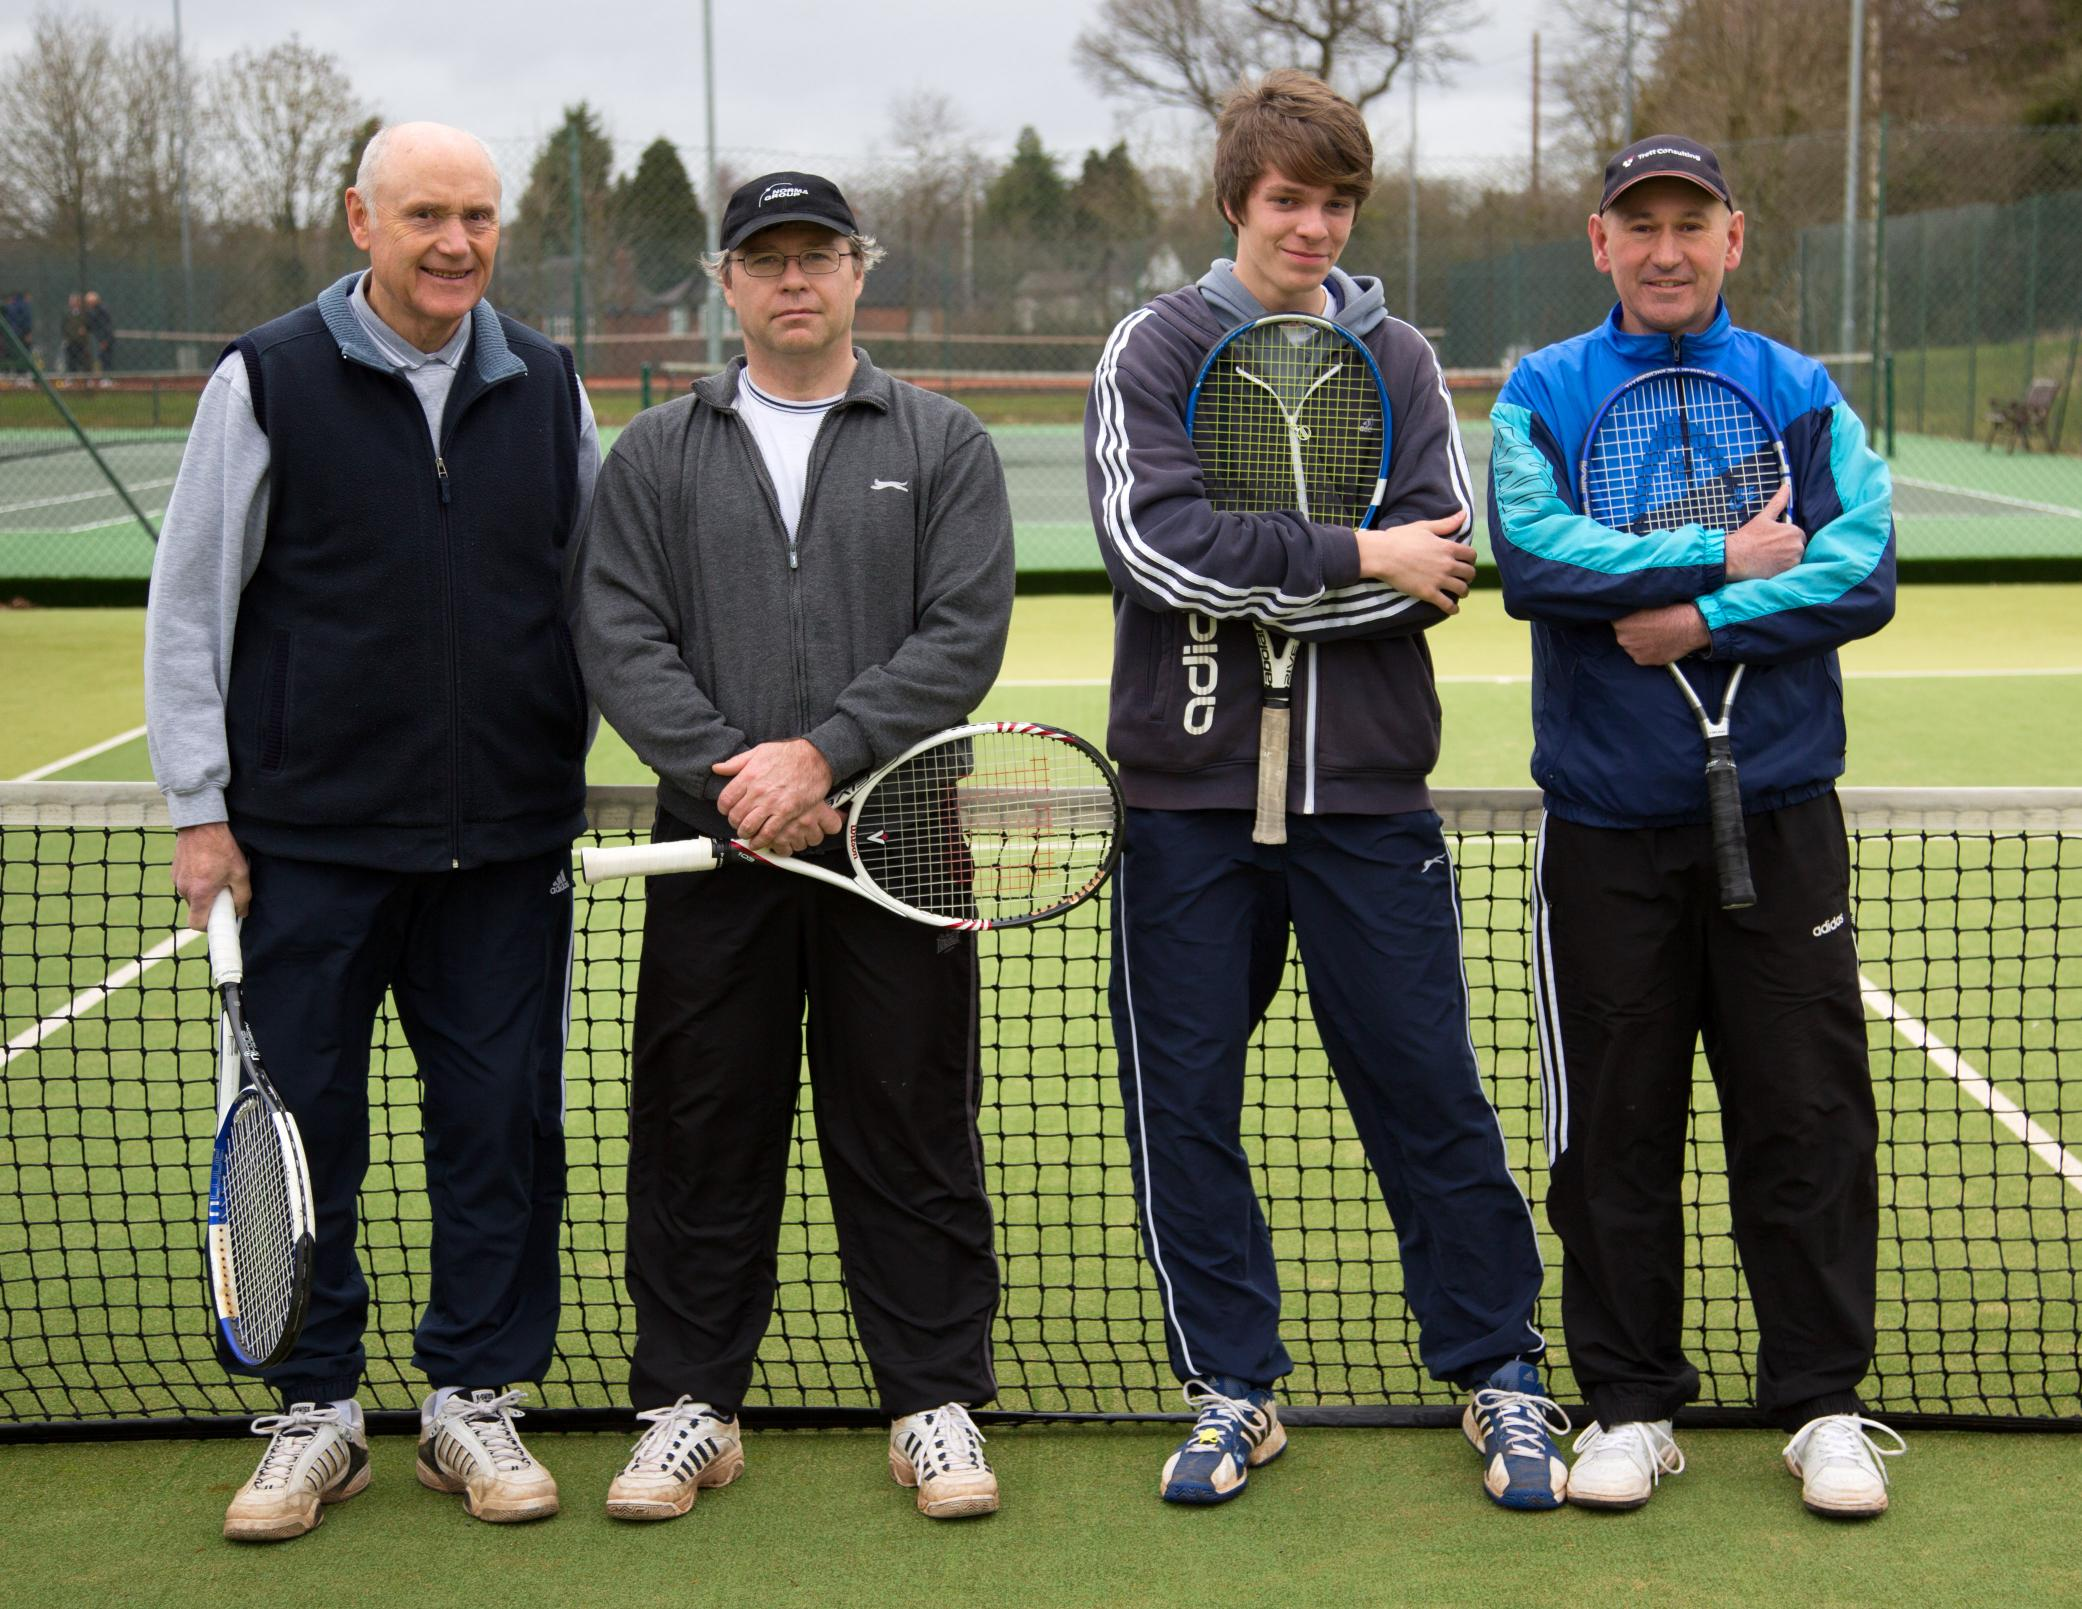 Bromsgrove Tennis Club's Men's E team of Brian Barton,Chris Hands, Jack Walters and Tim Roland.